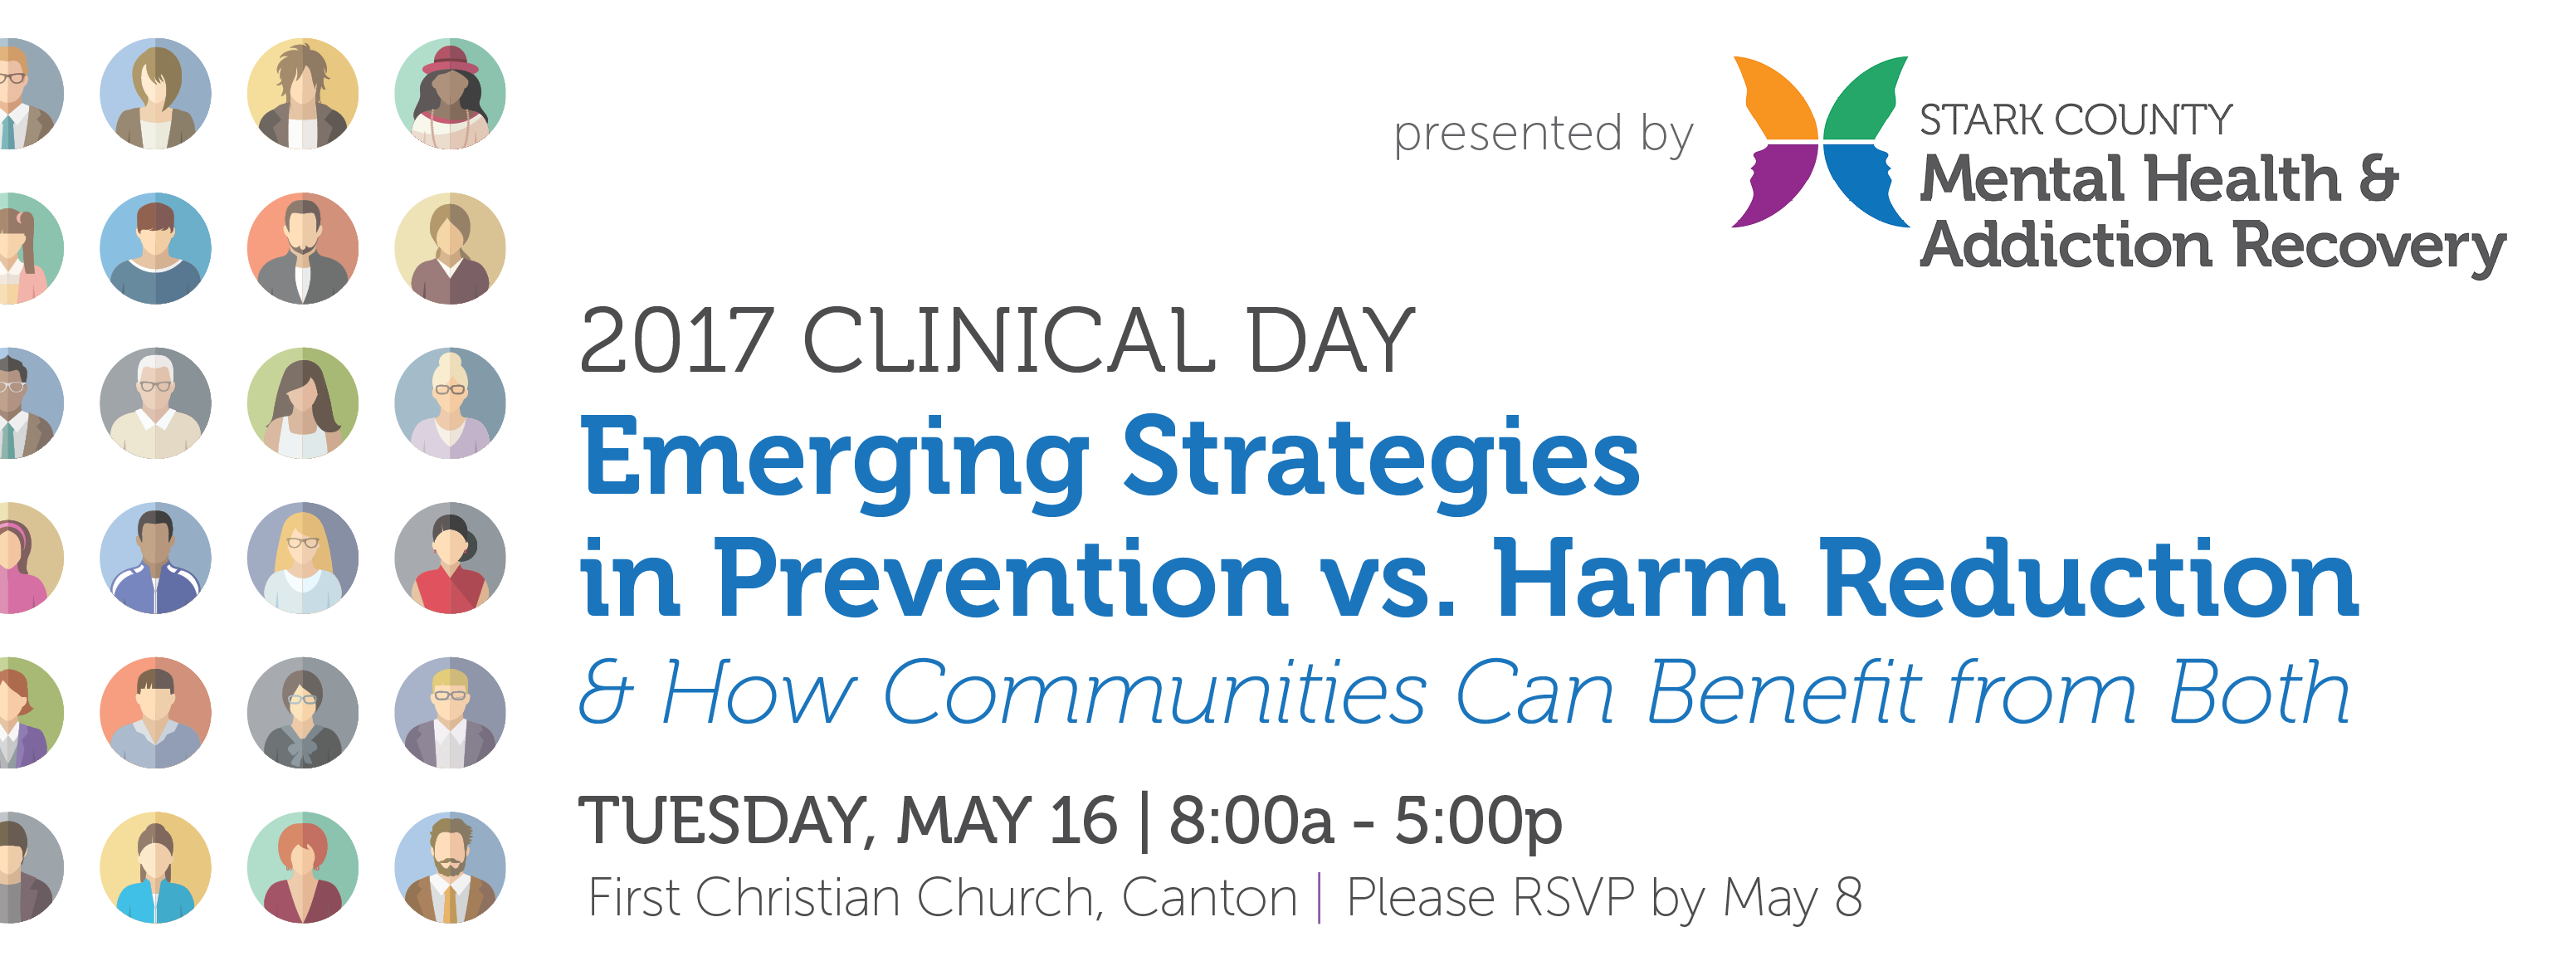 AnnualConf_ClinicalDay2017_Banner_745x278_02-13-17